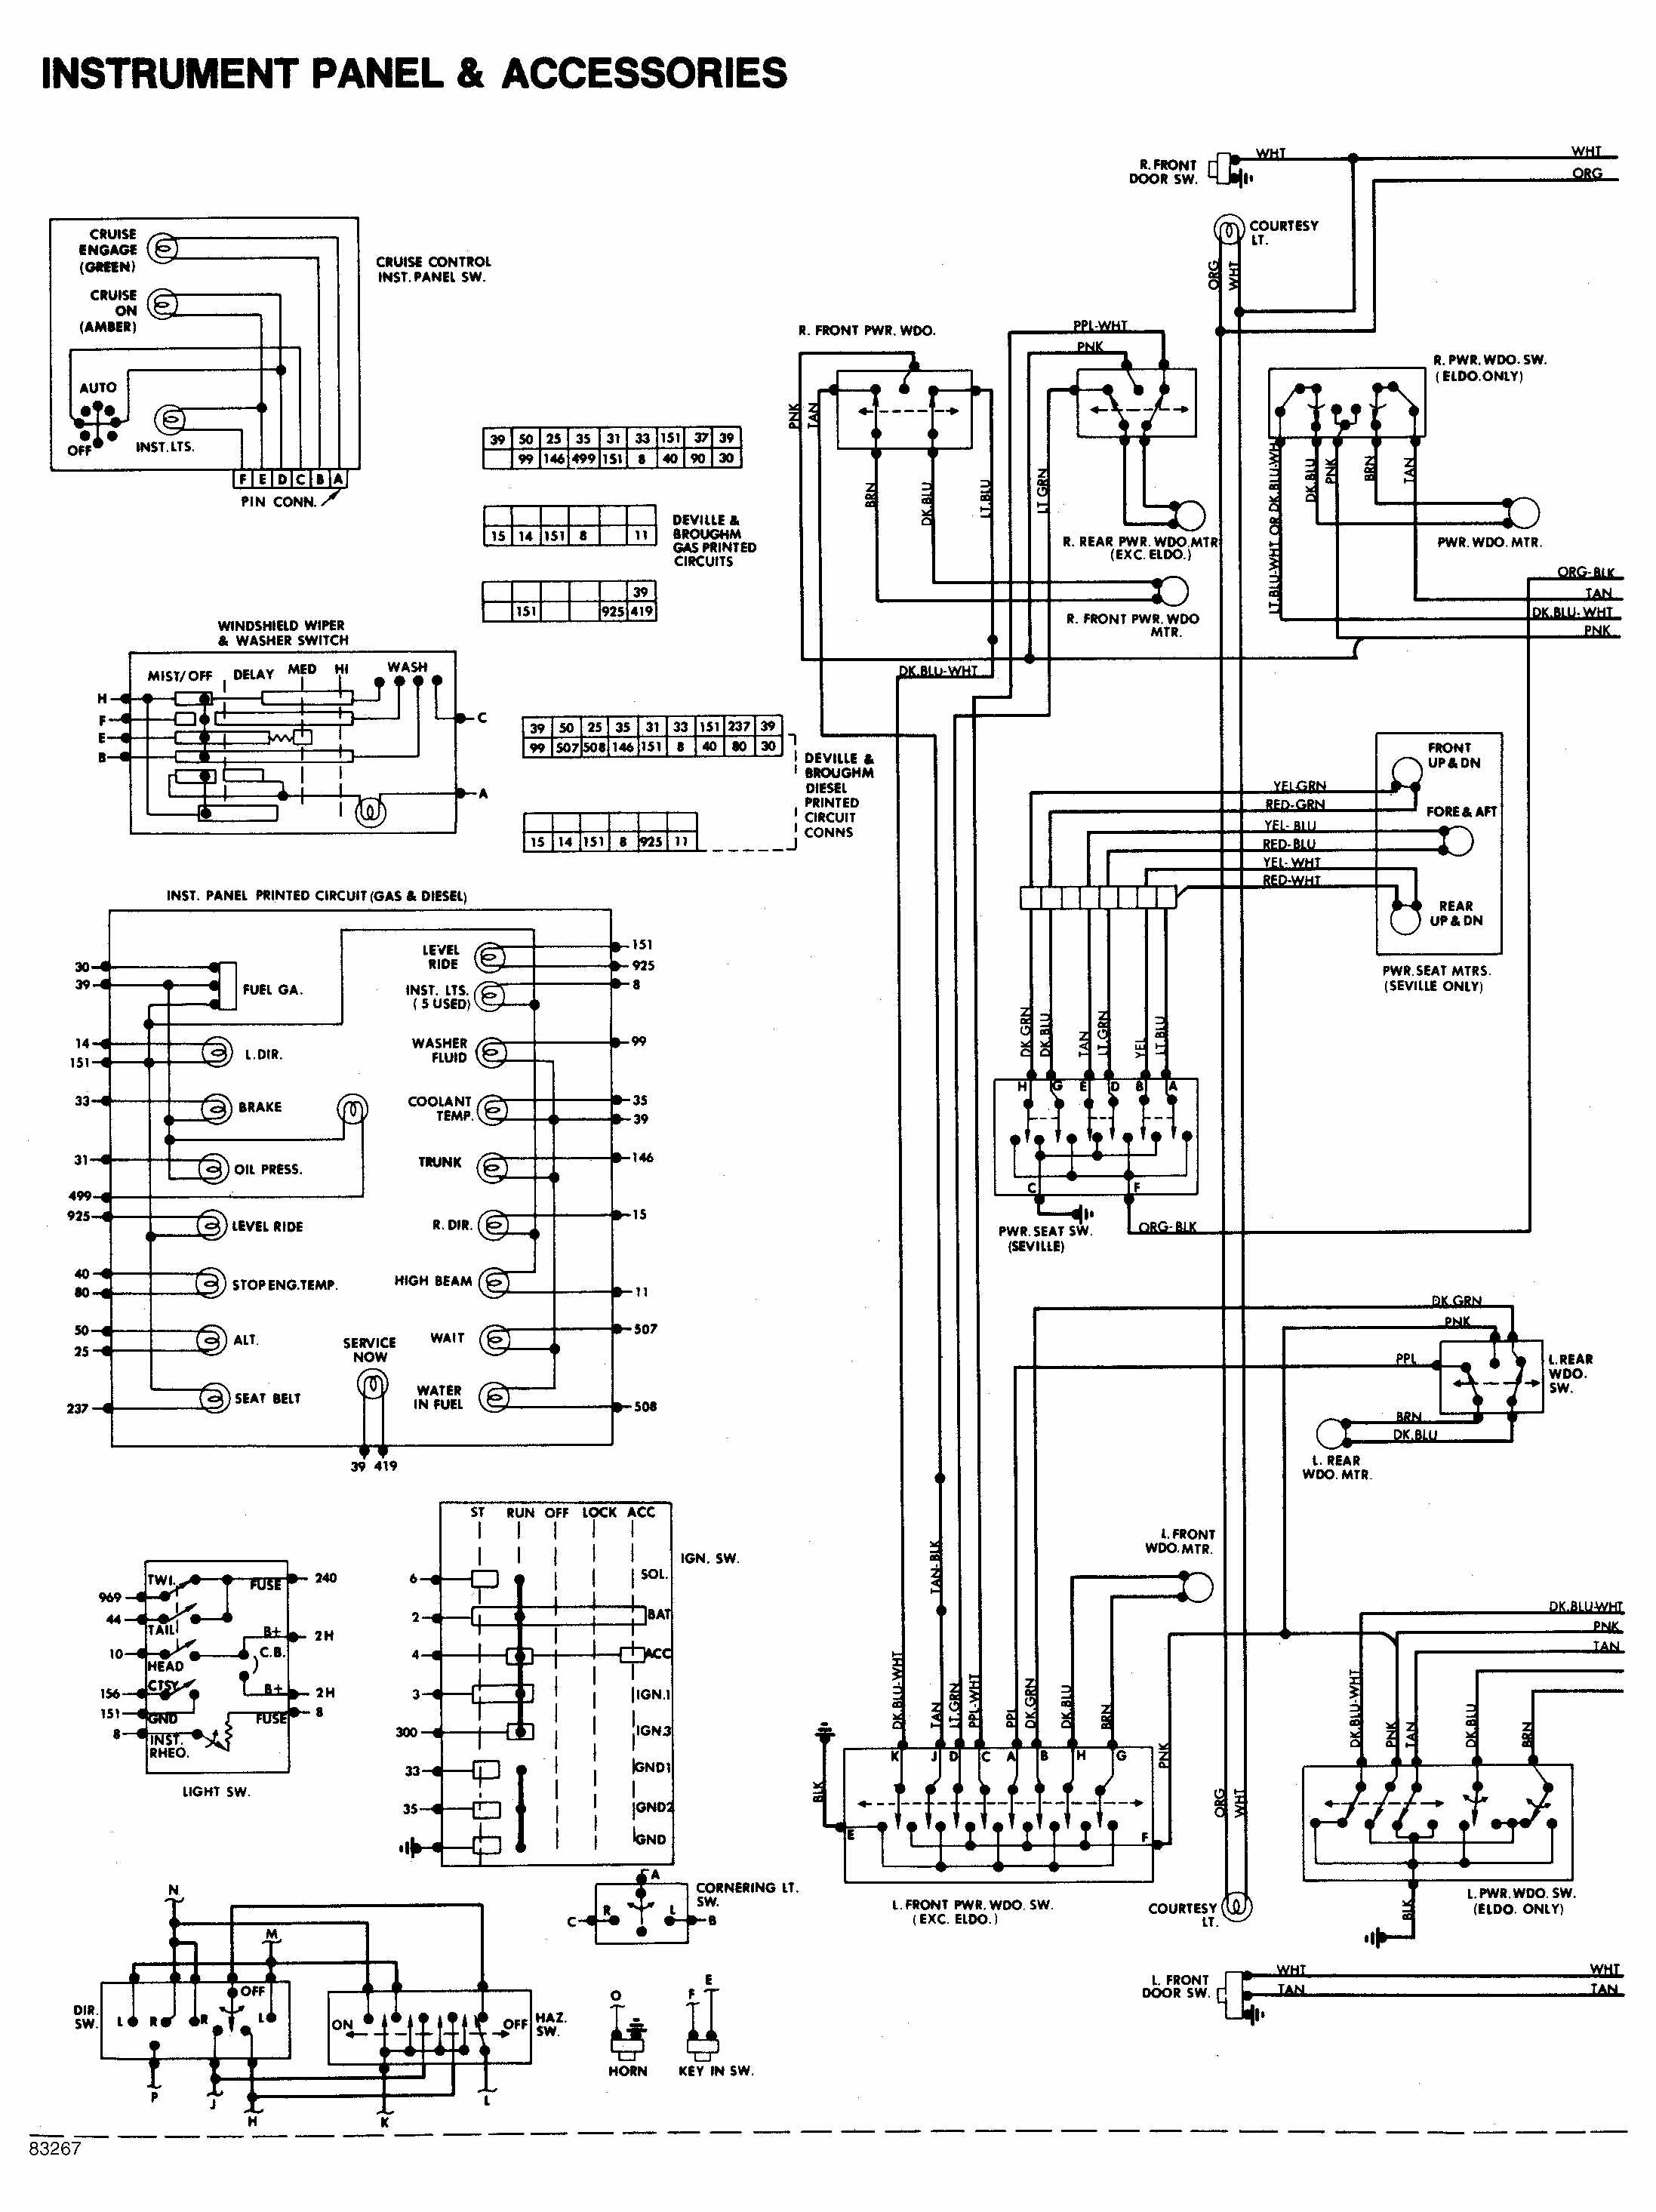 1969 Corvette Radio Wire Harness Not Lossing Wiring Diagram Hyundai Aftermarket Headlight Switch Third Rh 4 11 12 Jacobwinterstein Com Chrysler Satrun